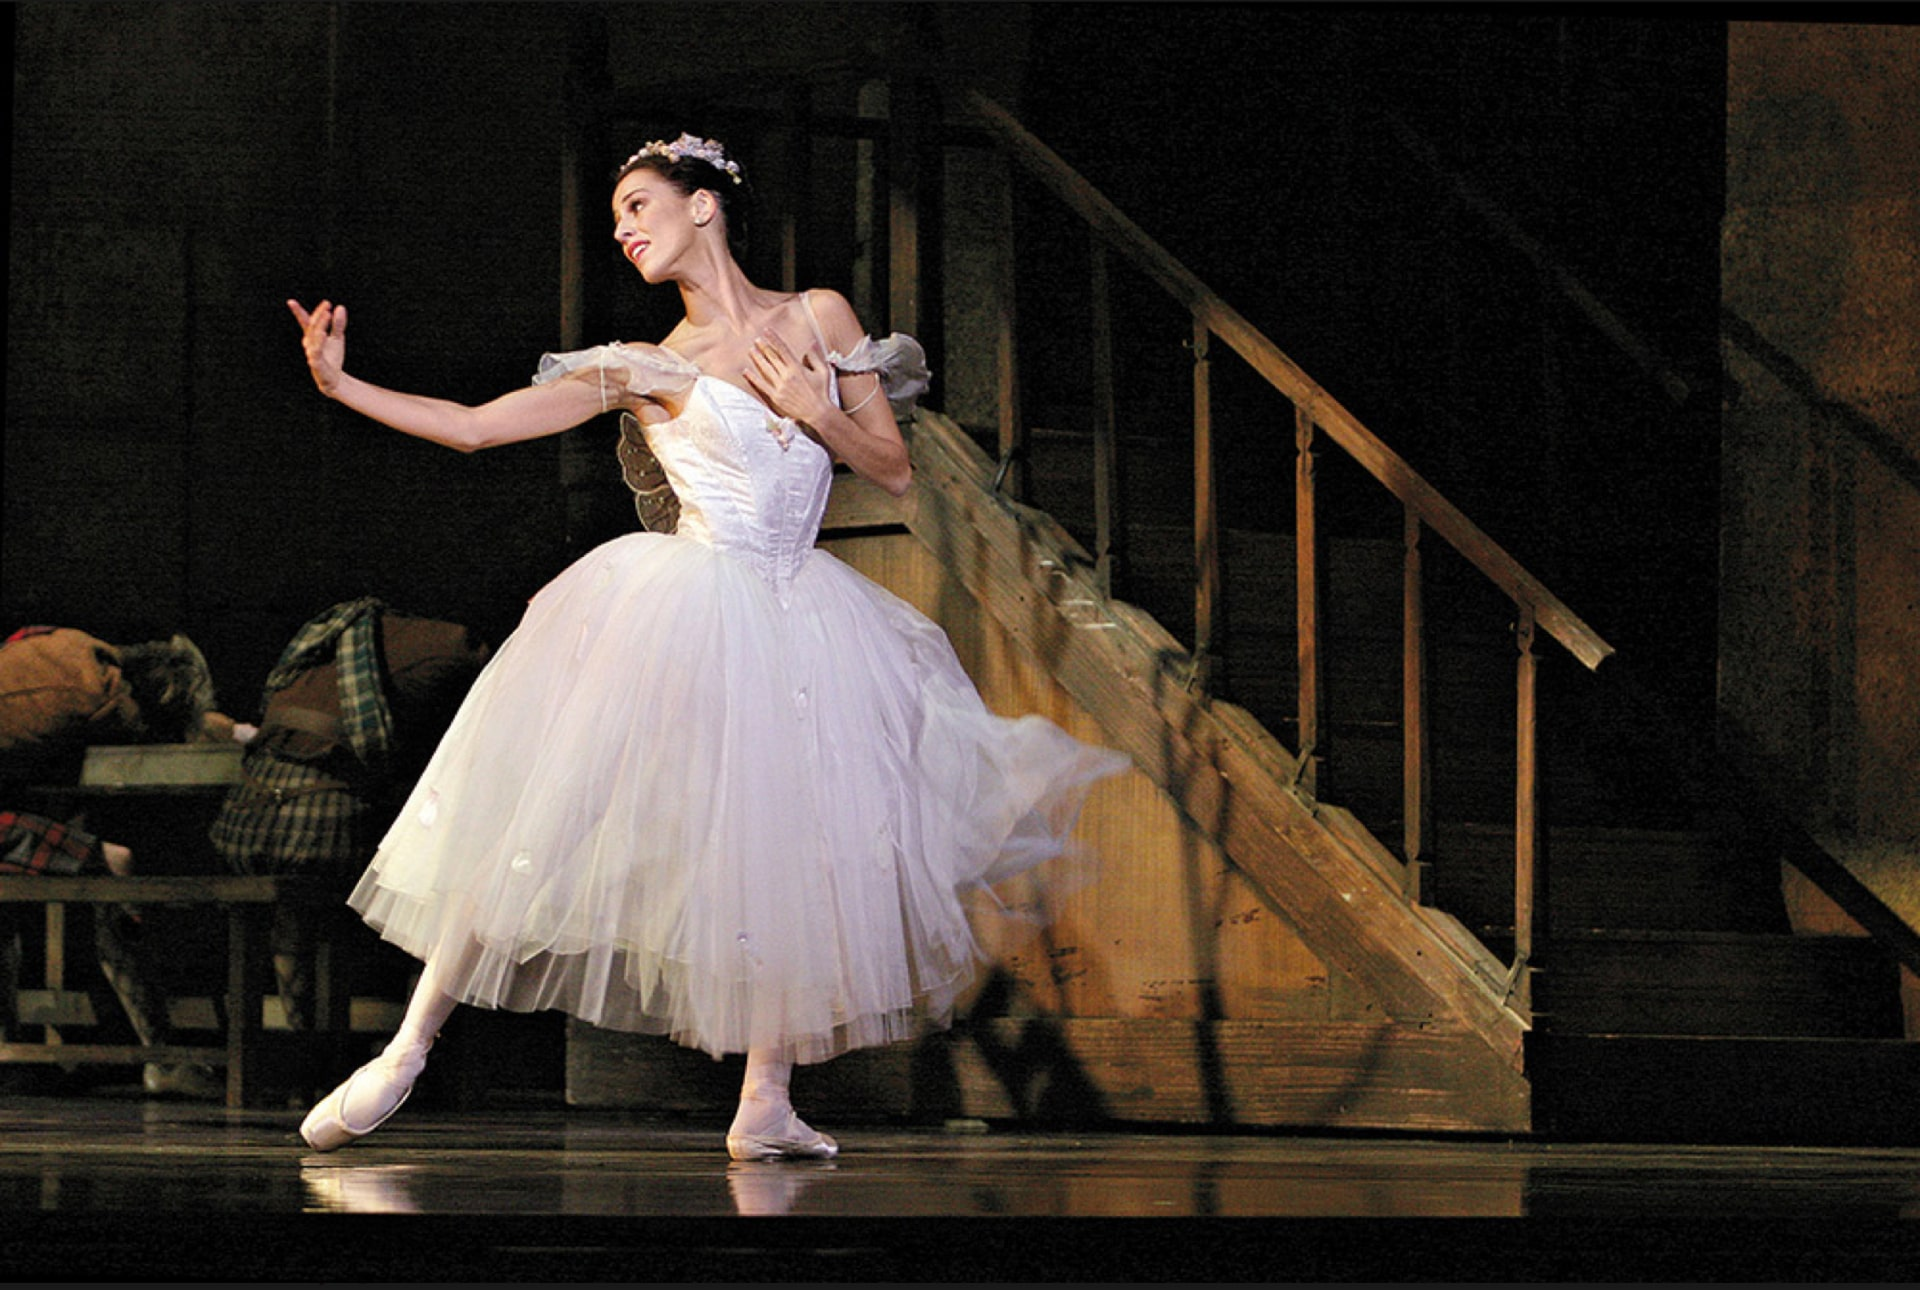 Ballerina in white dress gestures longingly beside wooden staircase.